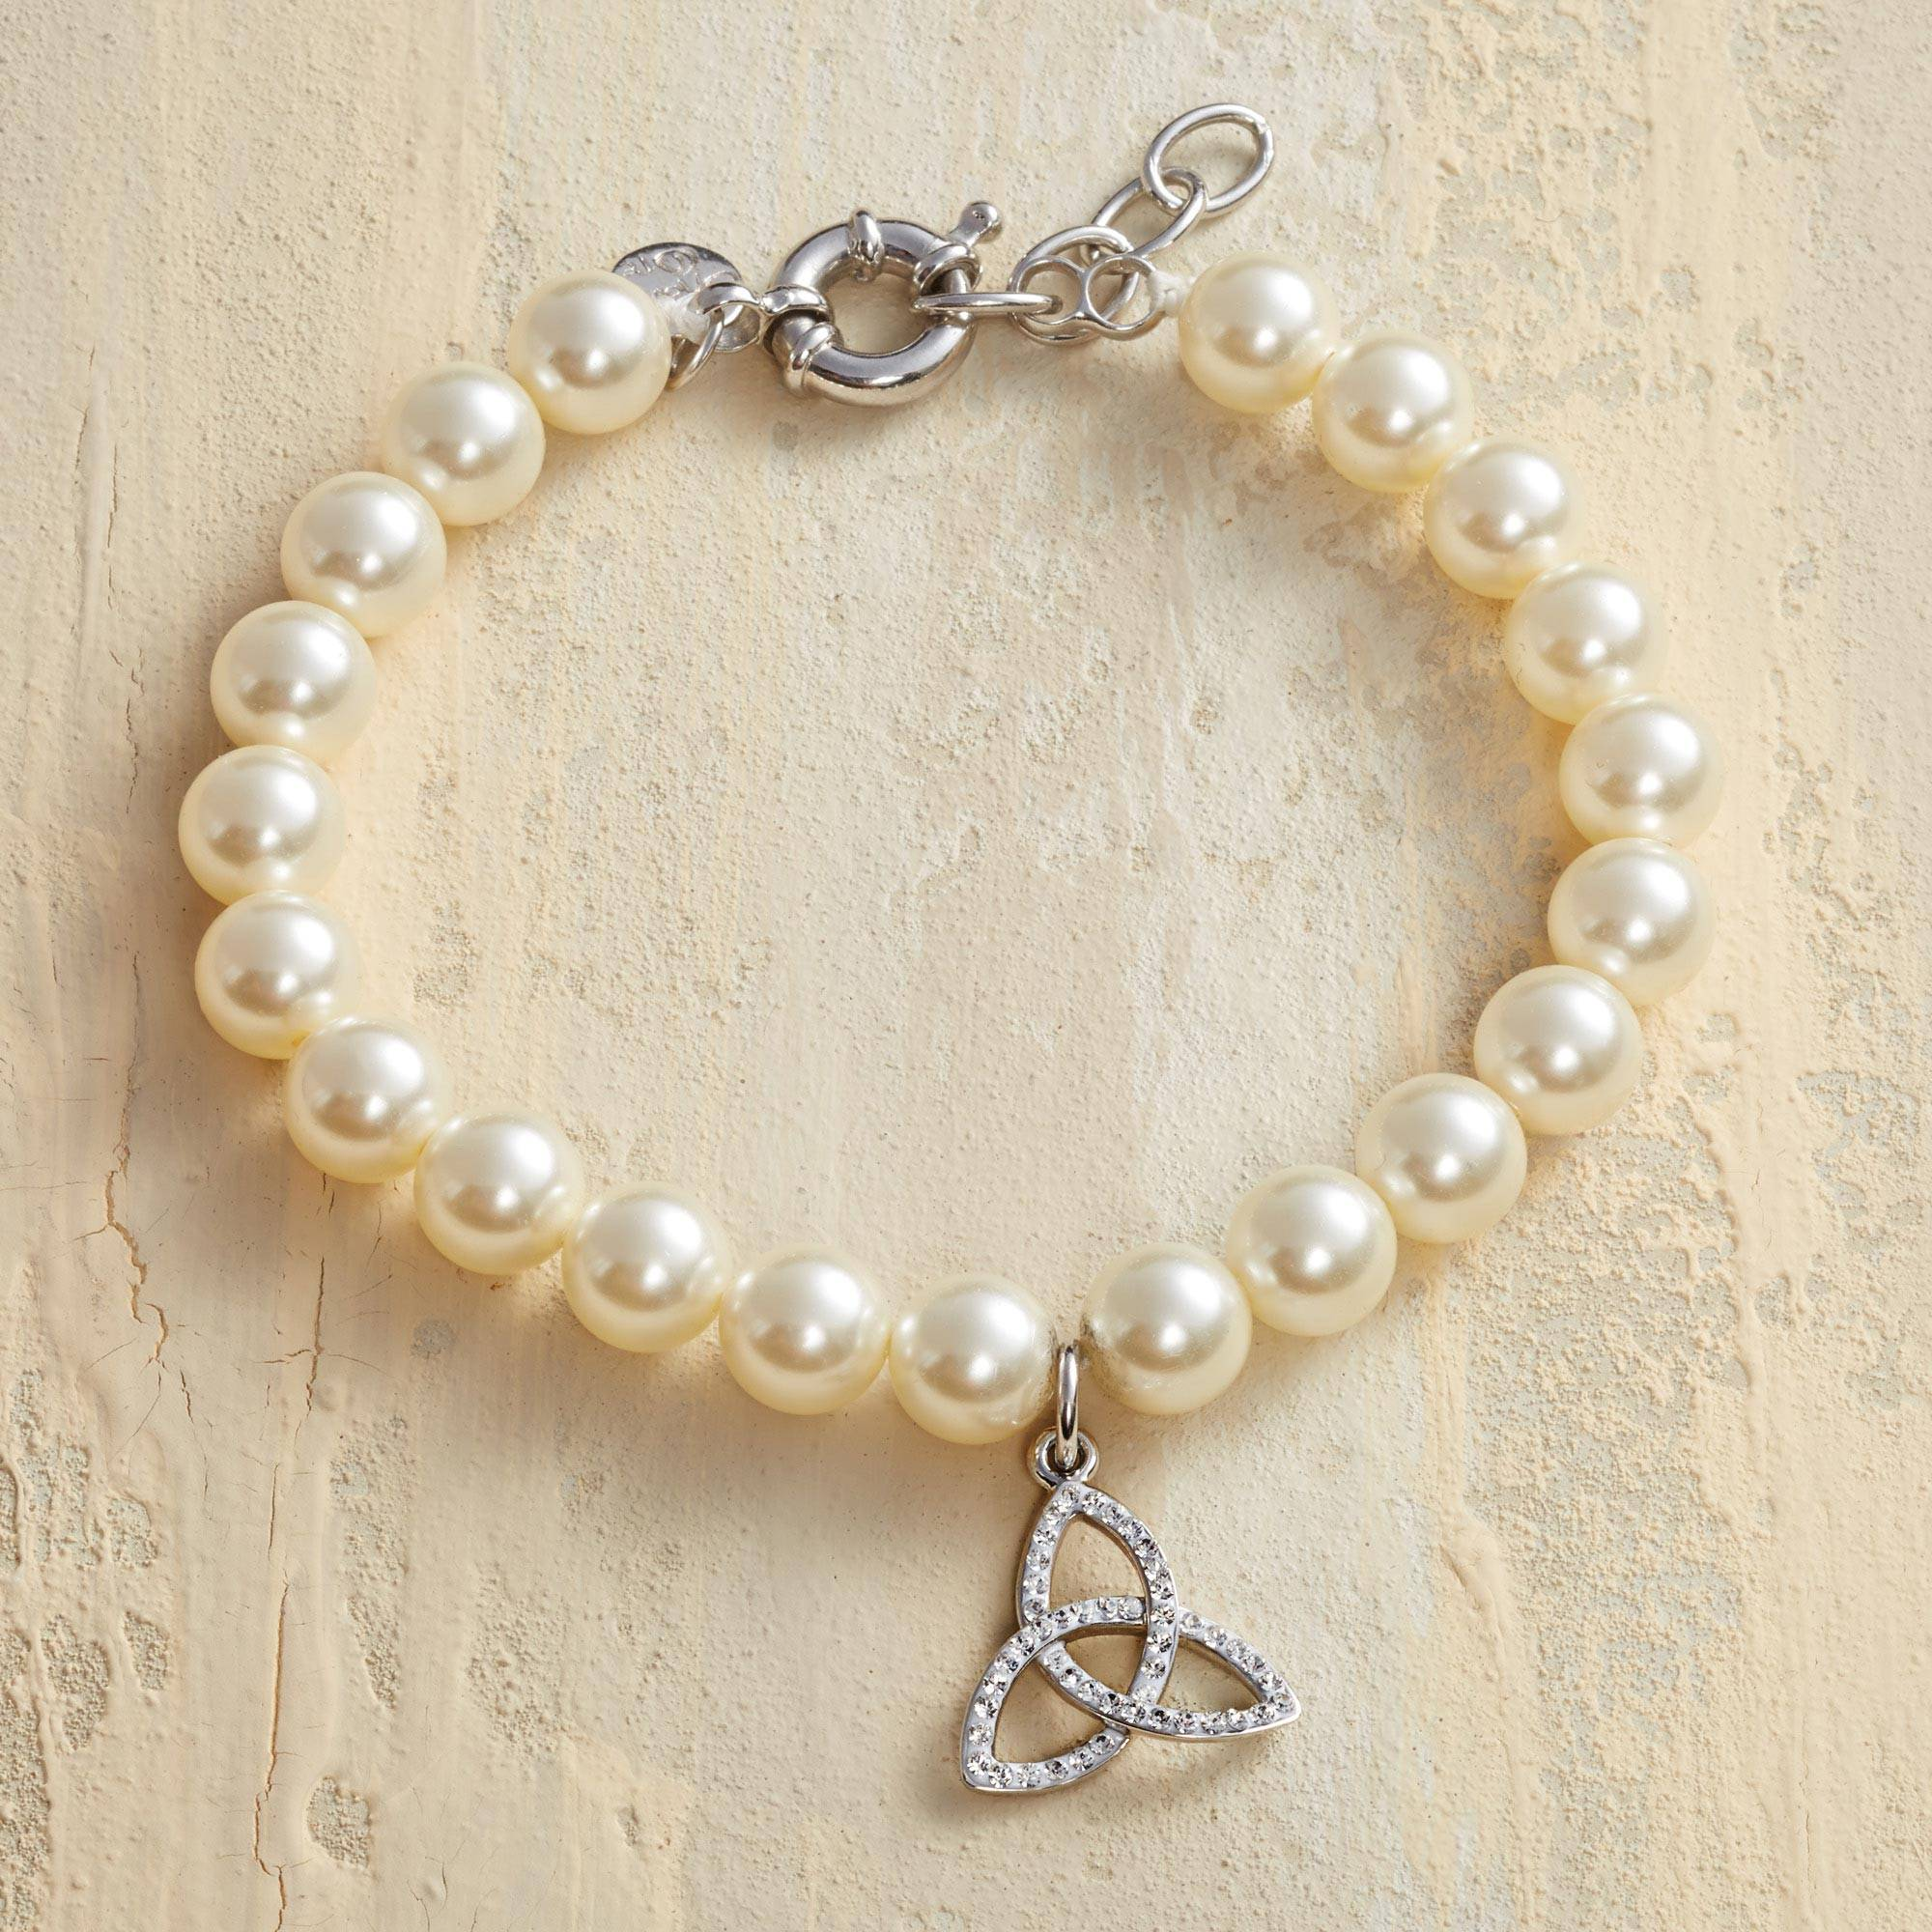 stone bracelet with t sterling products unicorn collections silver jewellery charms charm moonstone jazelle